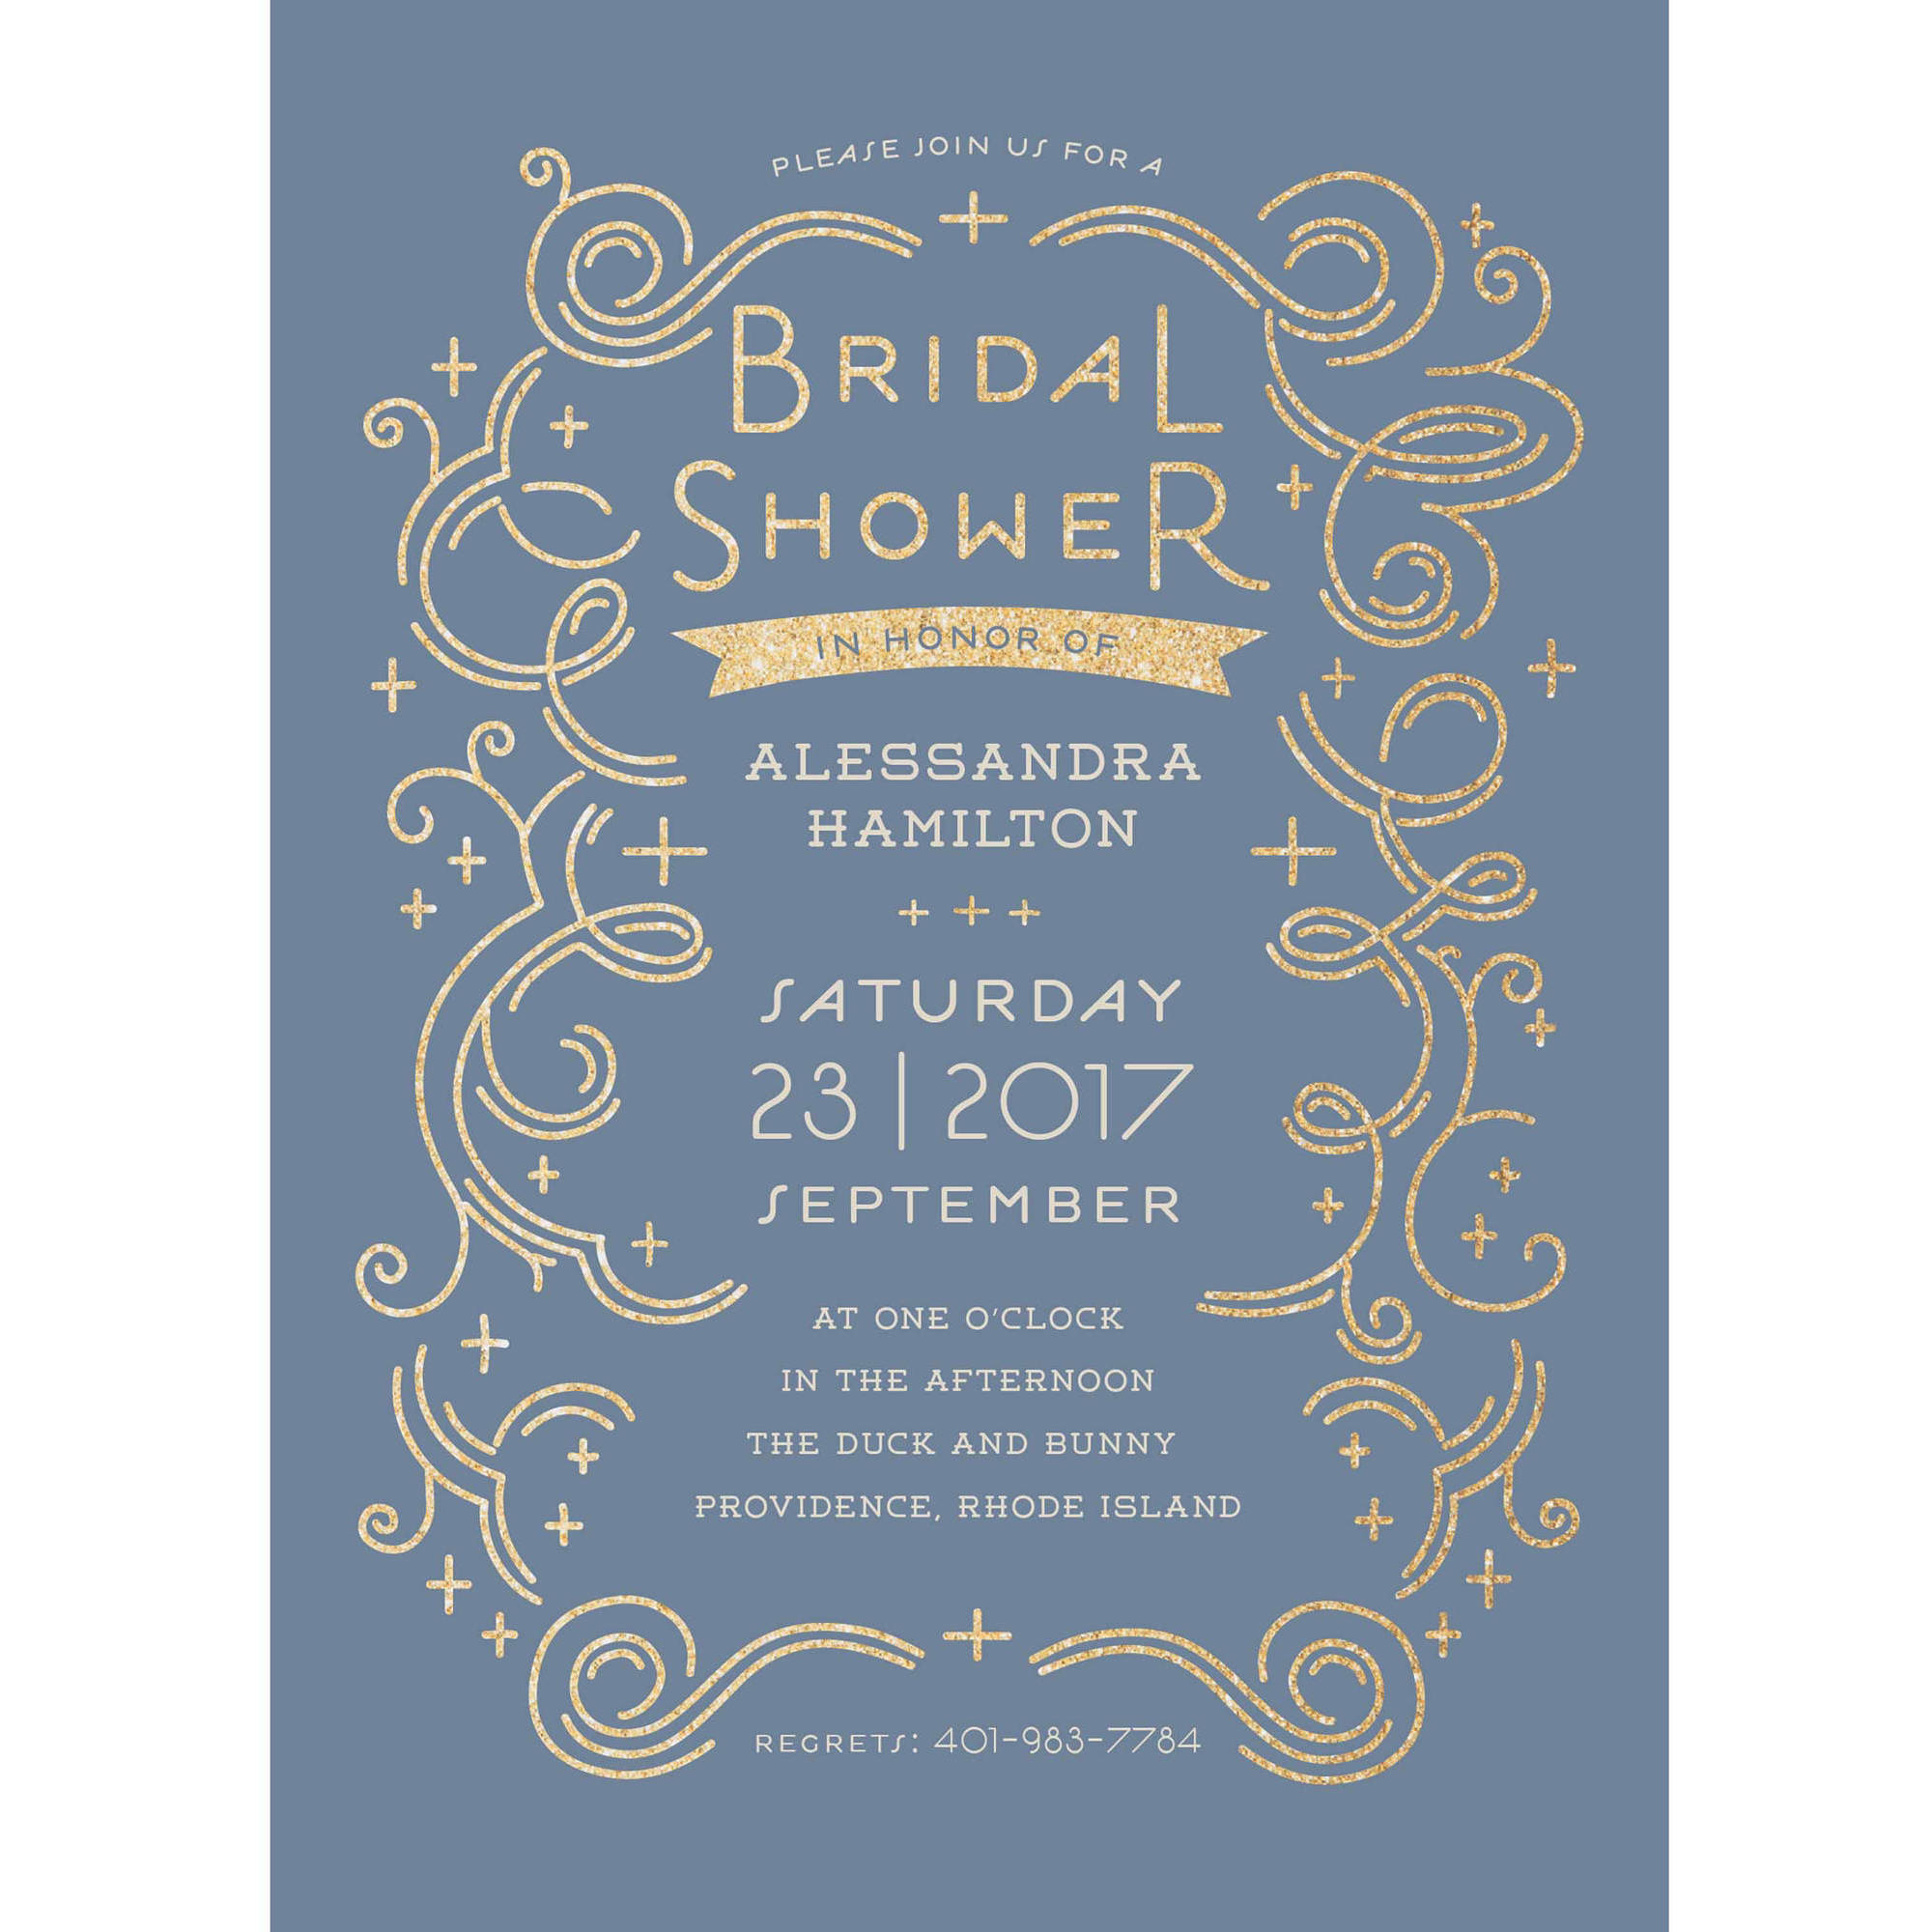 Glamorous Bride Standard Bridal Shower Invitation